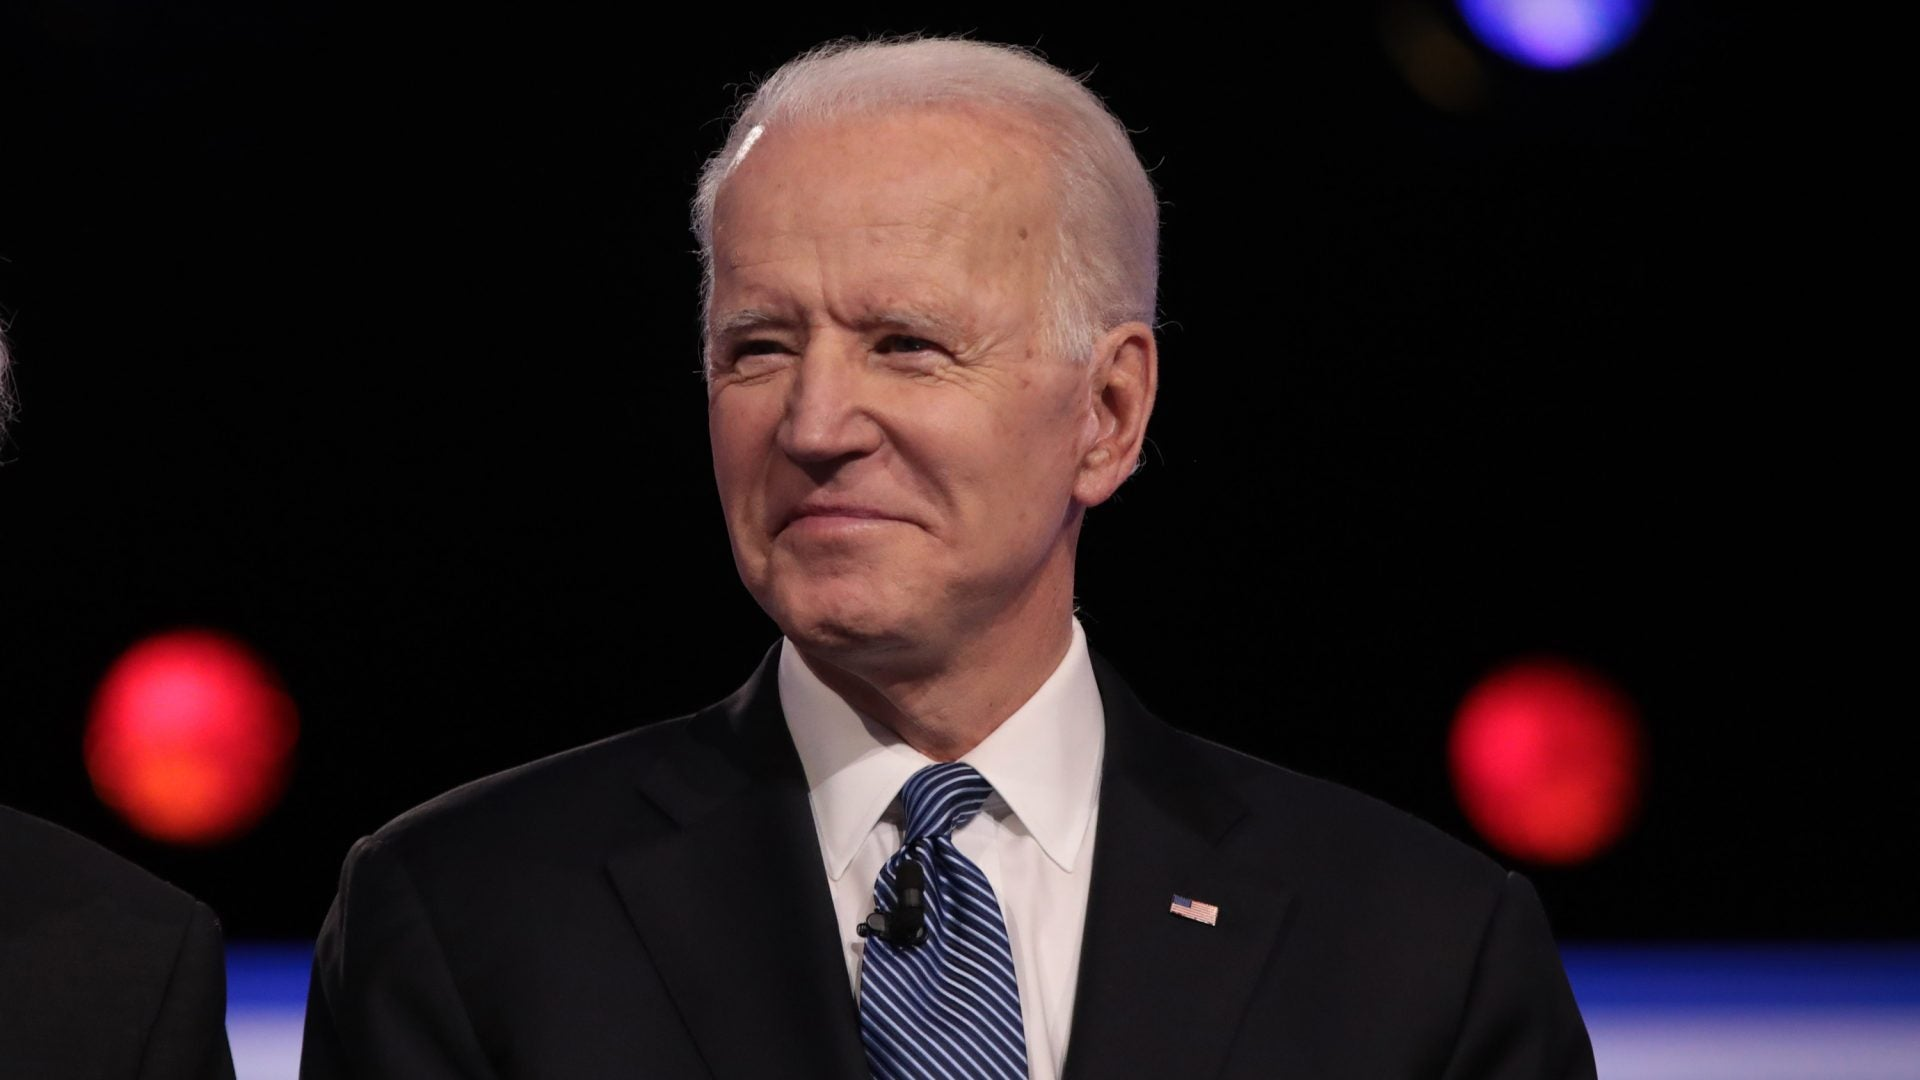 New Poll Puts Biden In Lead Among Black Super Tuesday Voters